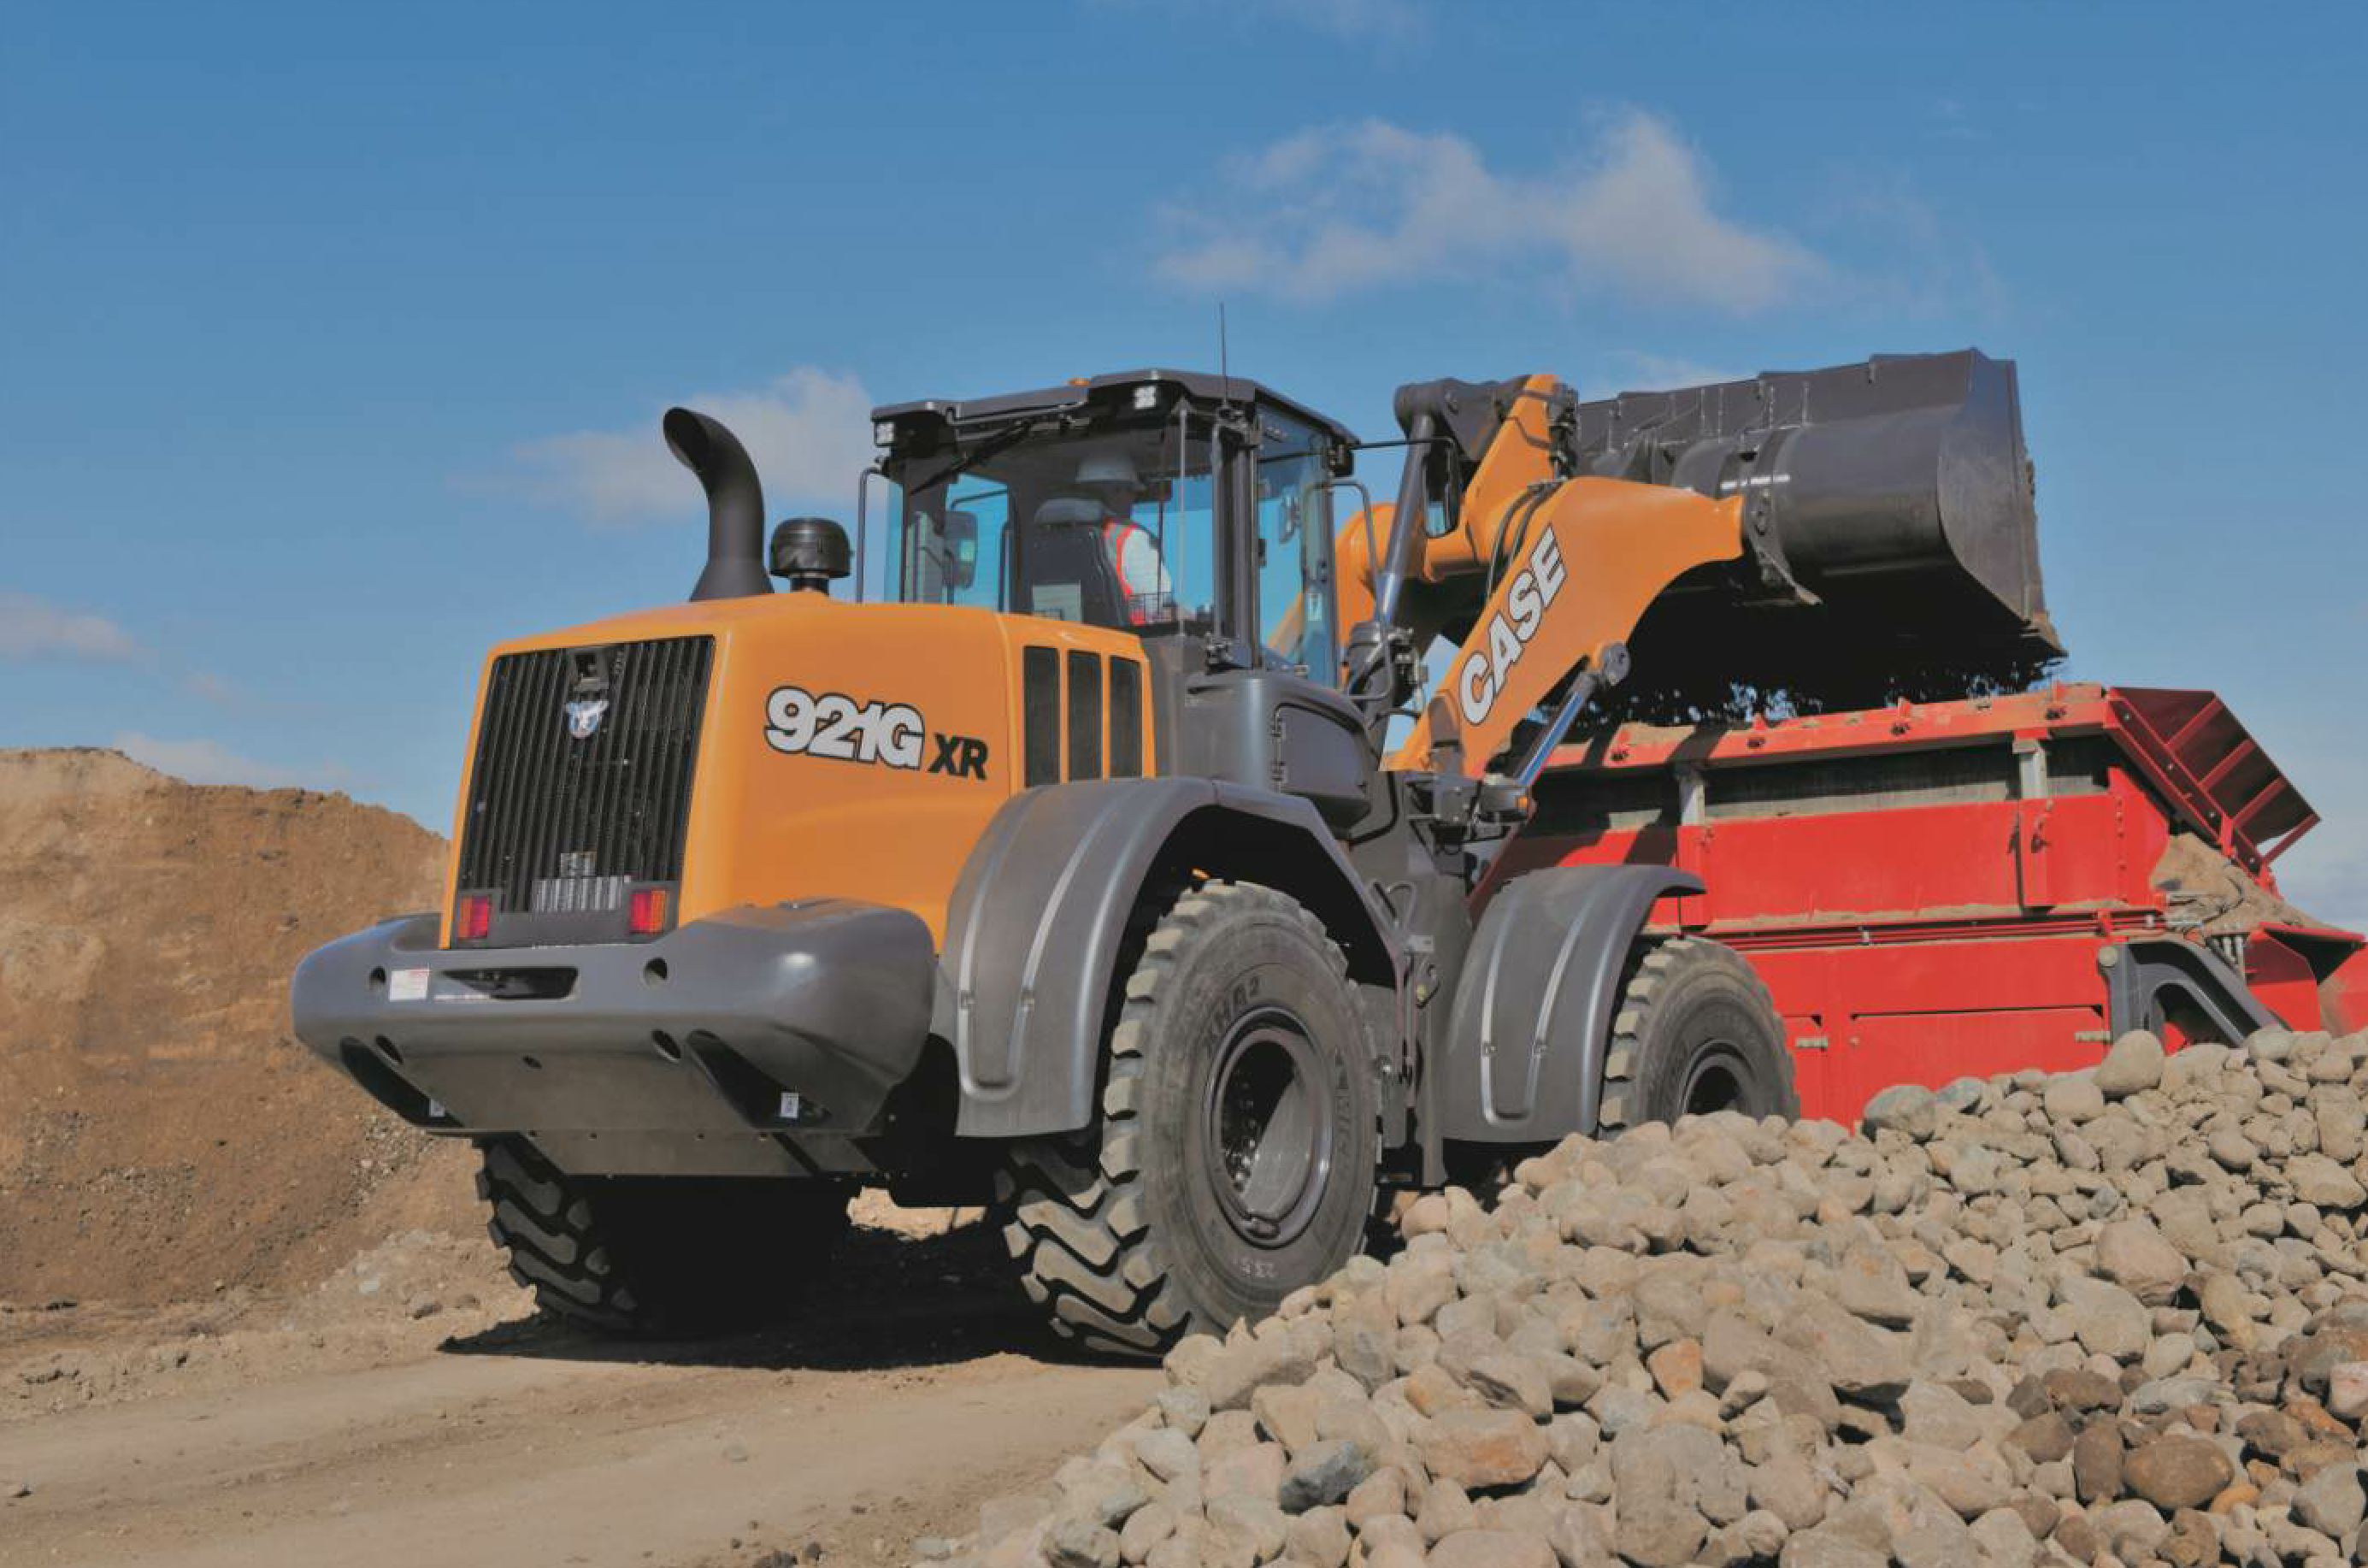 If your facility still uses wheel loaders to get material from stockpiles to feed bins or from piles to crushers or screens, make sure operators are trained for the most fuel efficient use of equipment. Photo courtesy Case Construction Equipment.